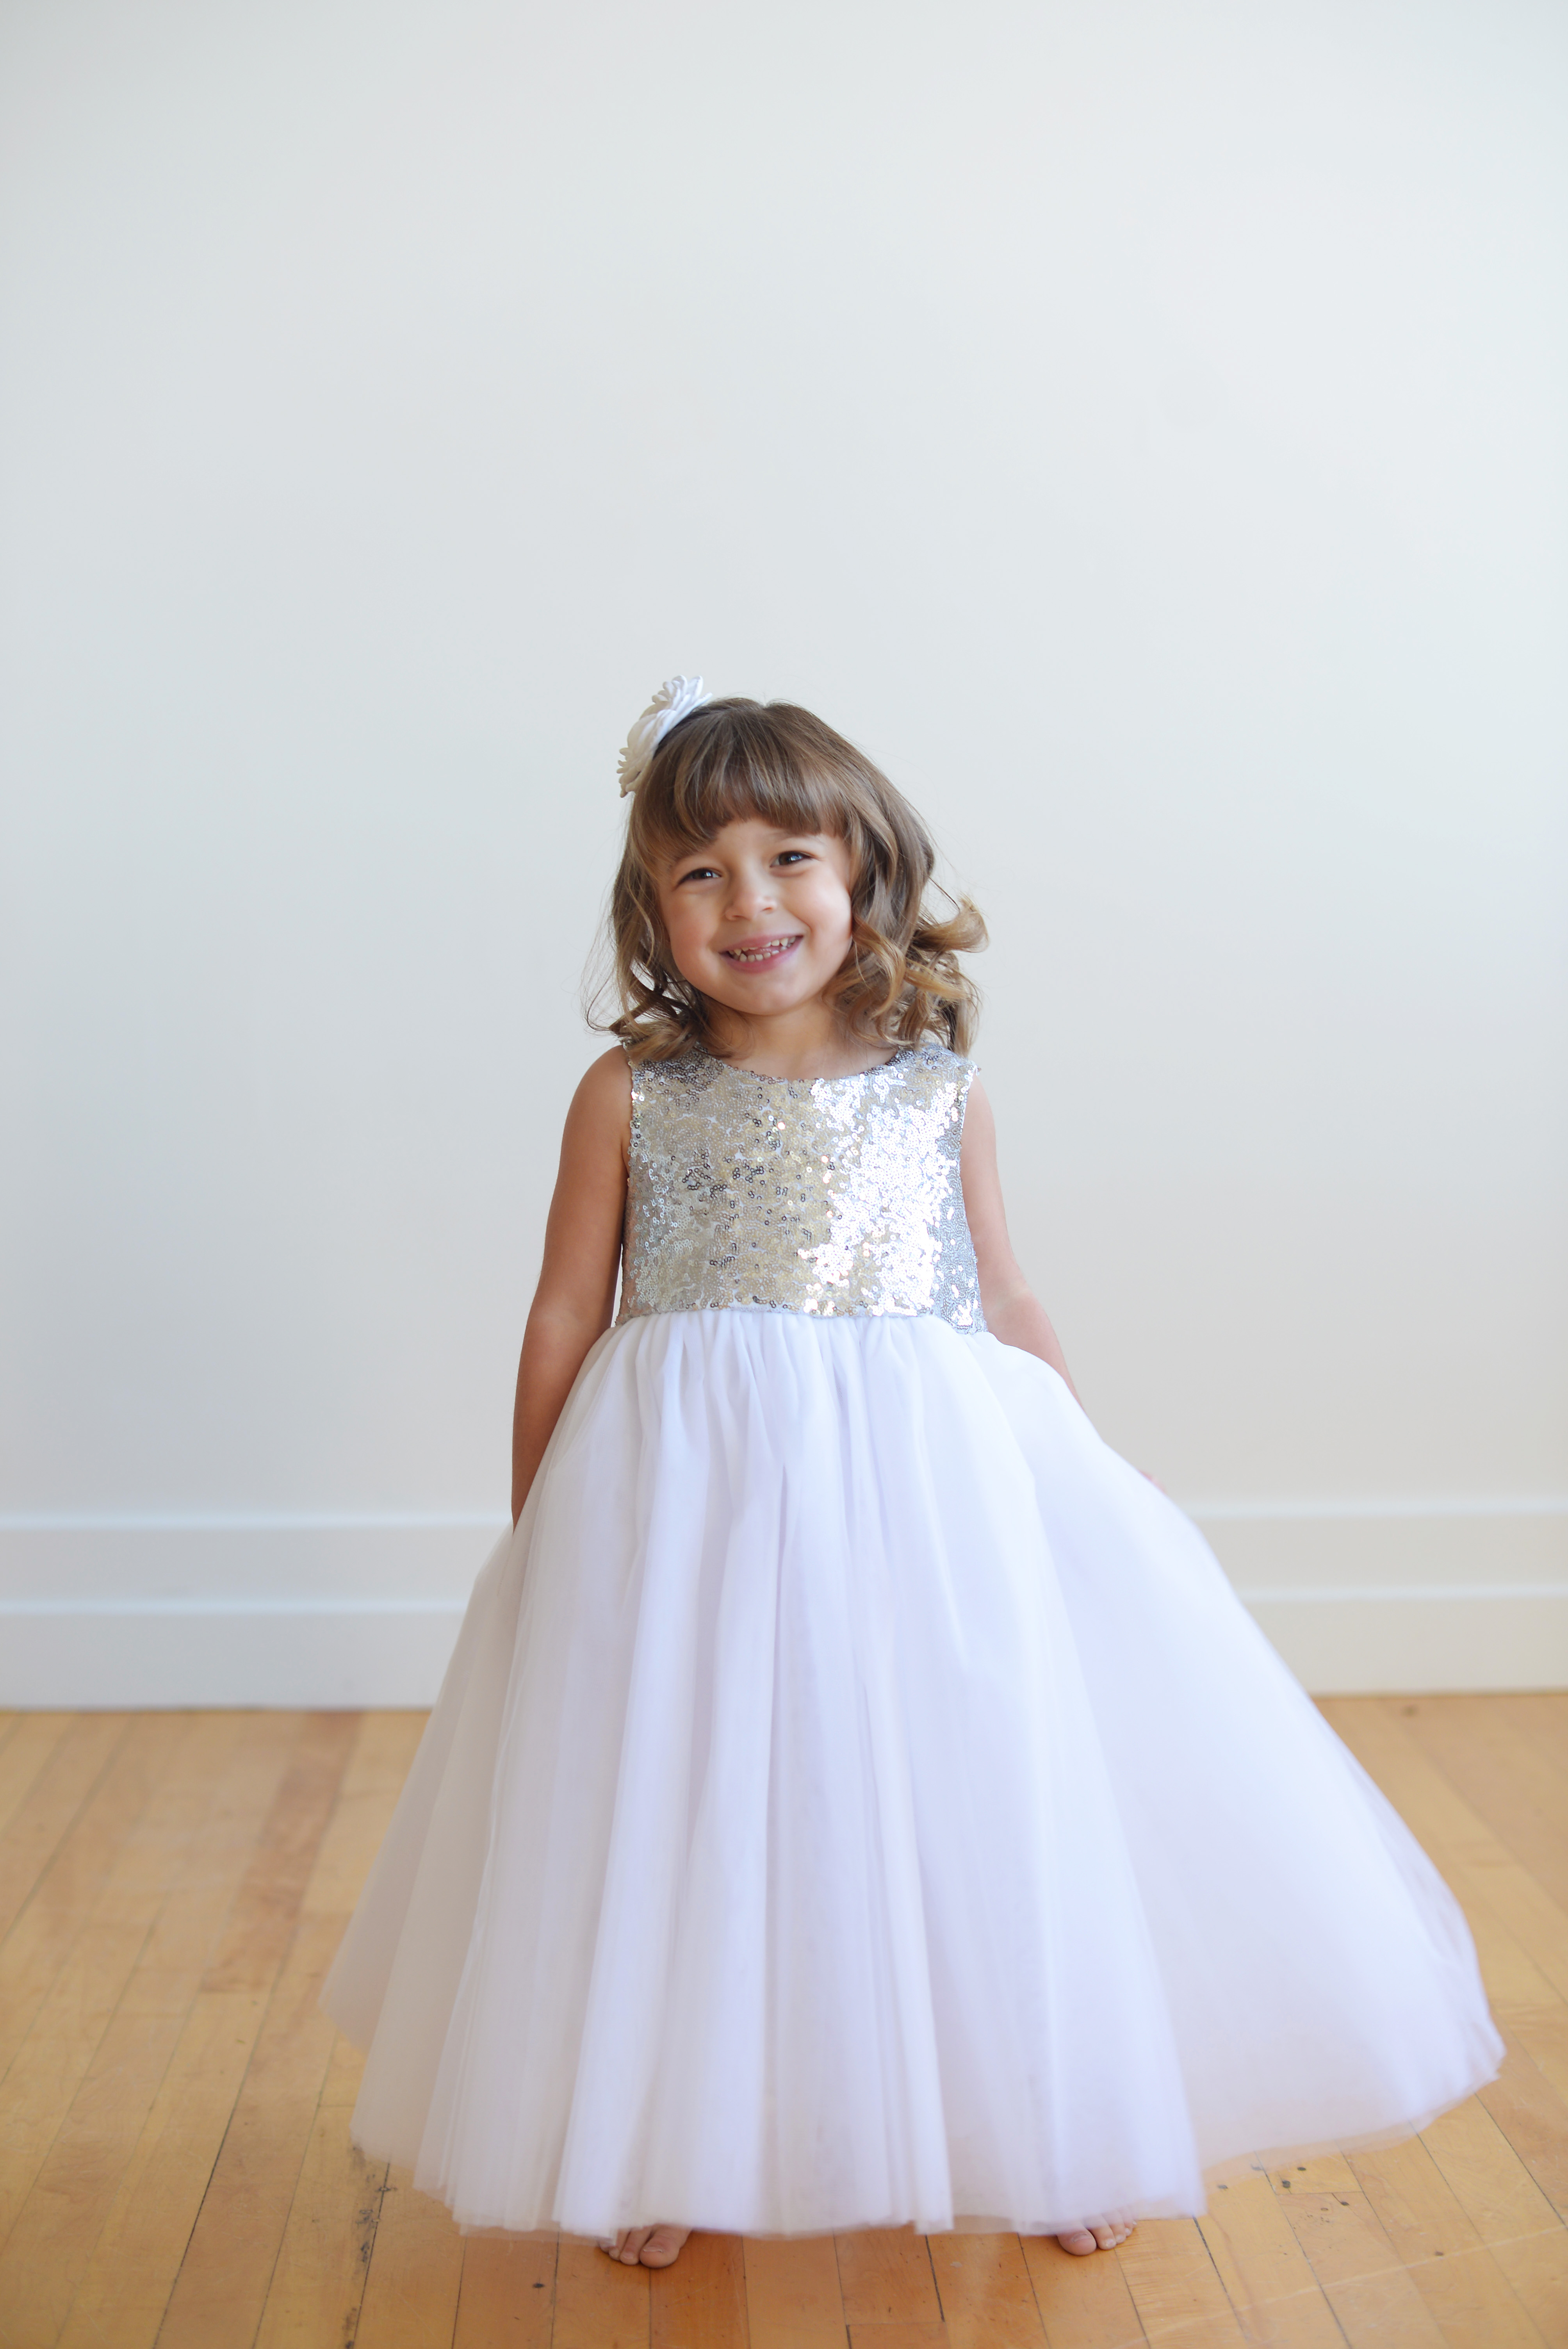 See Our Range Of Sequinsilk And Tulle Flower Girl Dresses And First